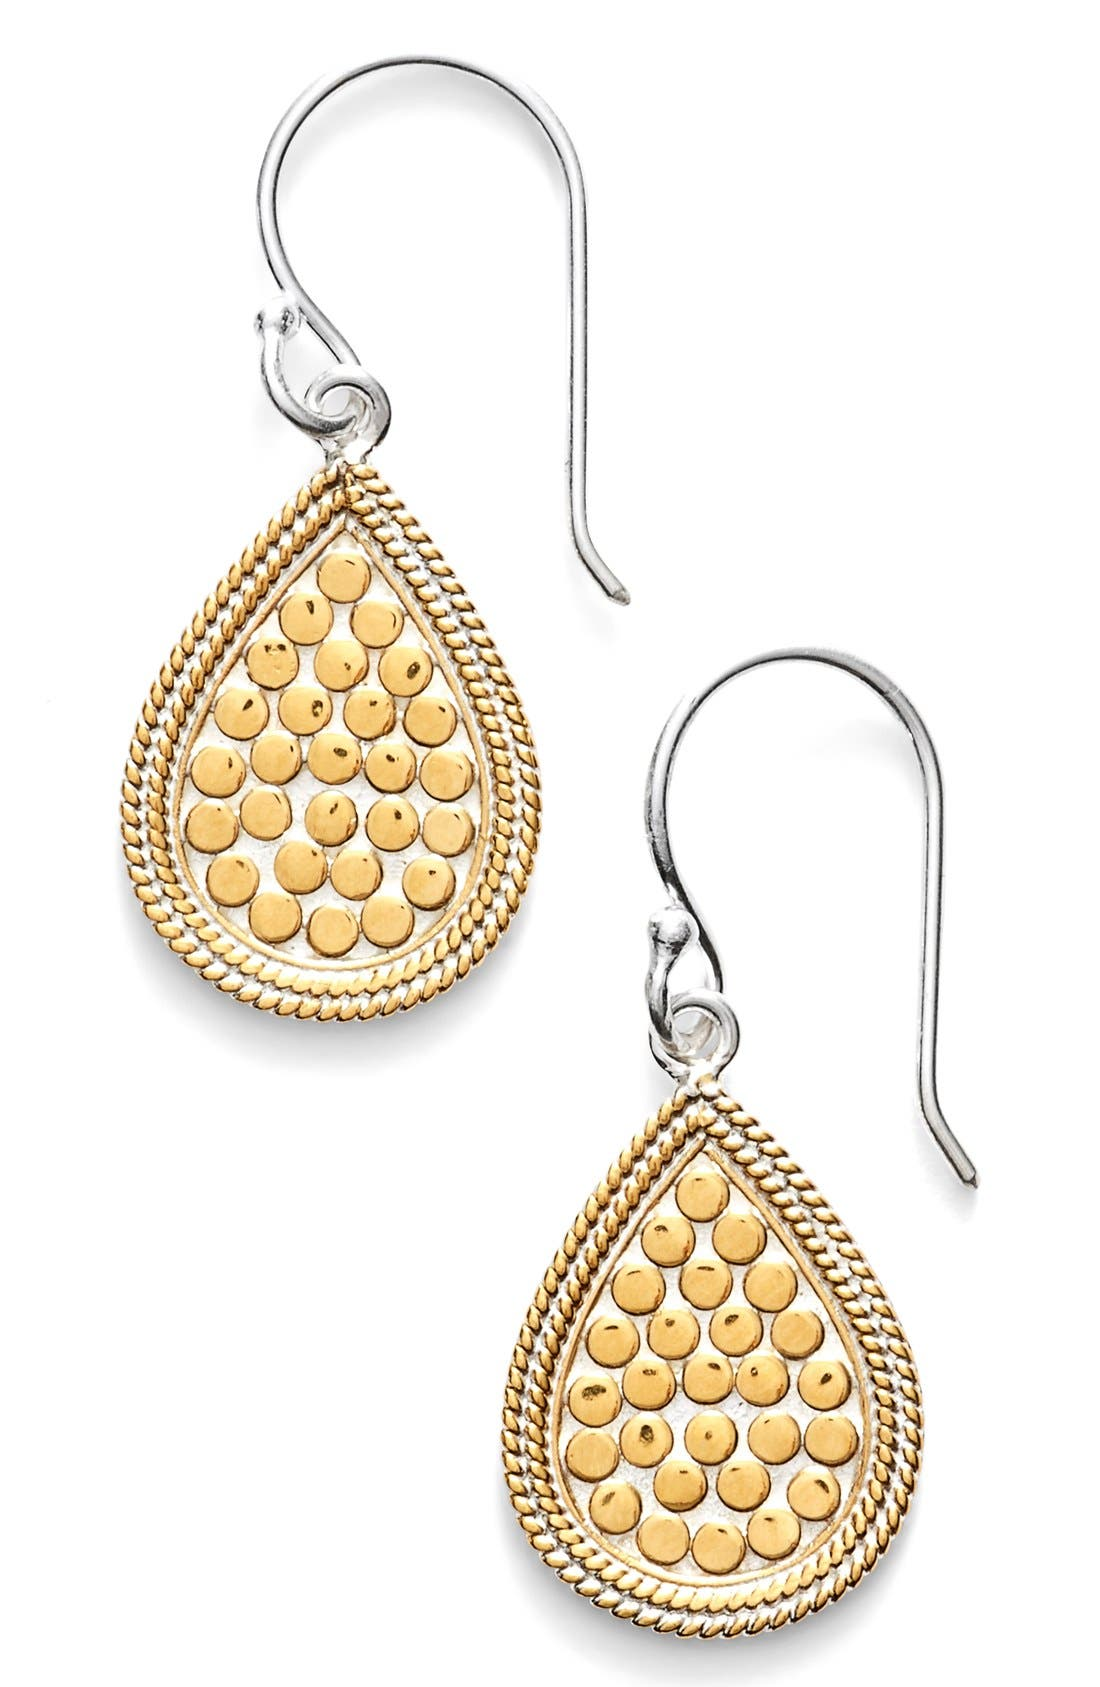 ANNA BECK 'Gili' Small Teardrop Earrings